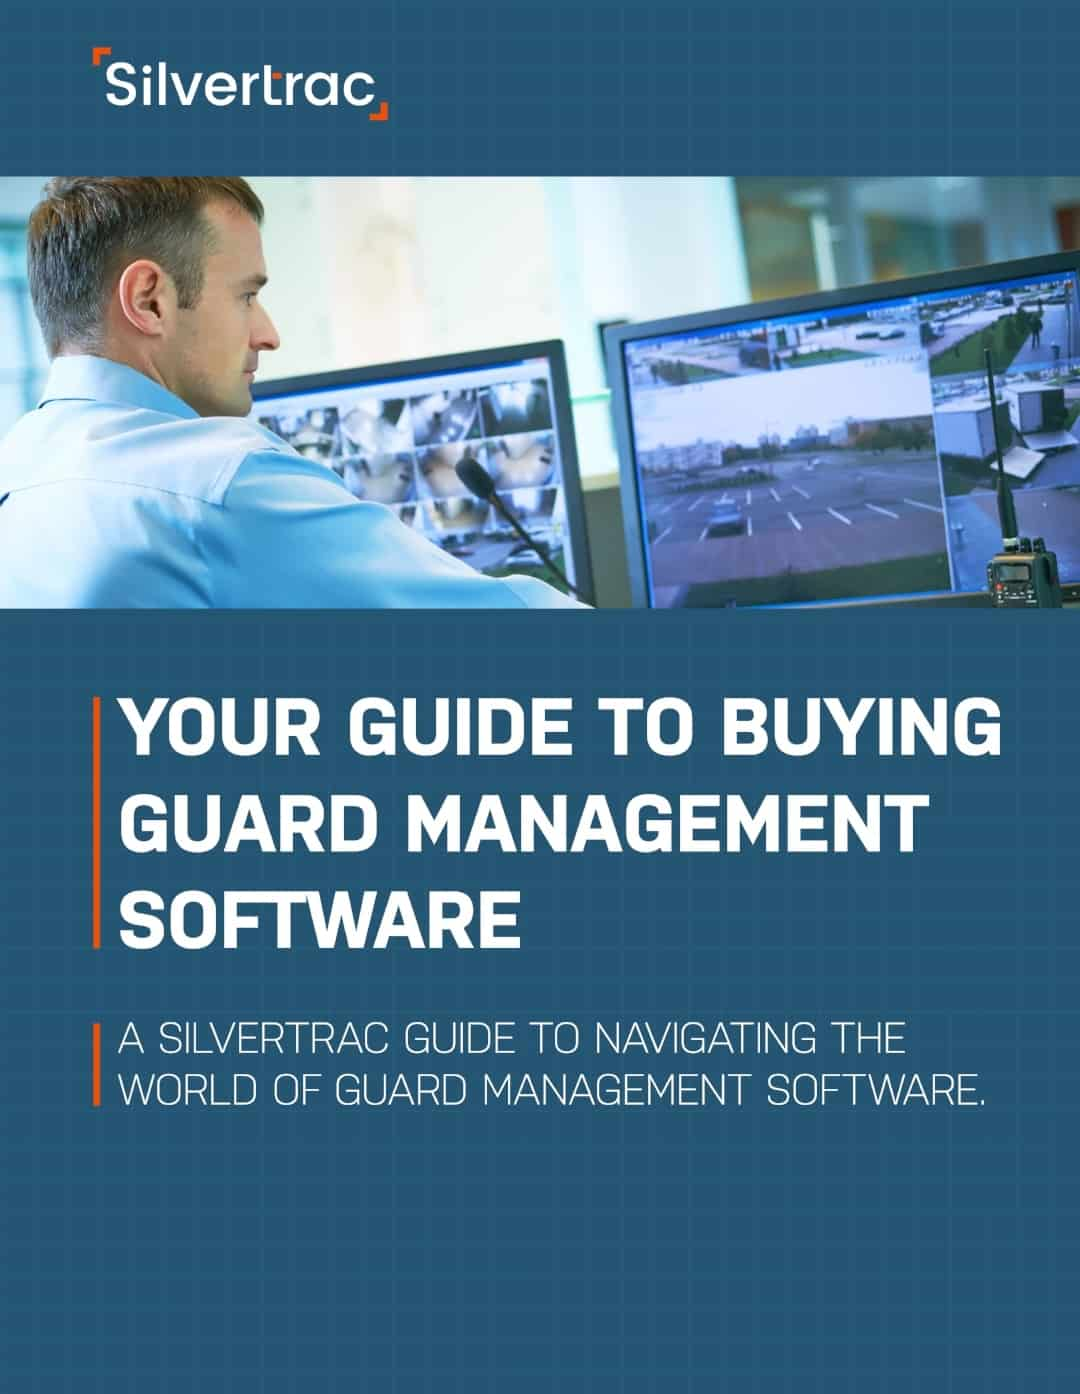 Your Guide to Buying Guard Management Software eBook provided by Silvertrac